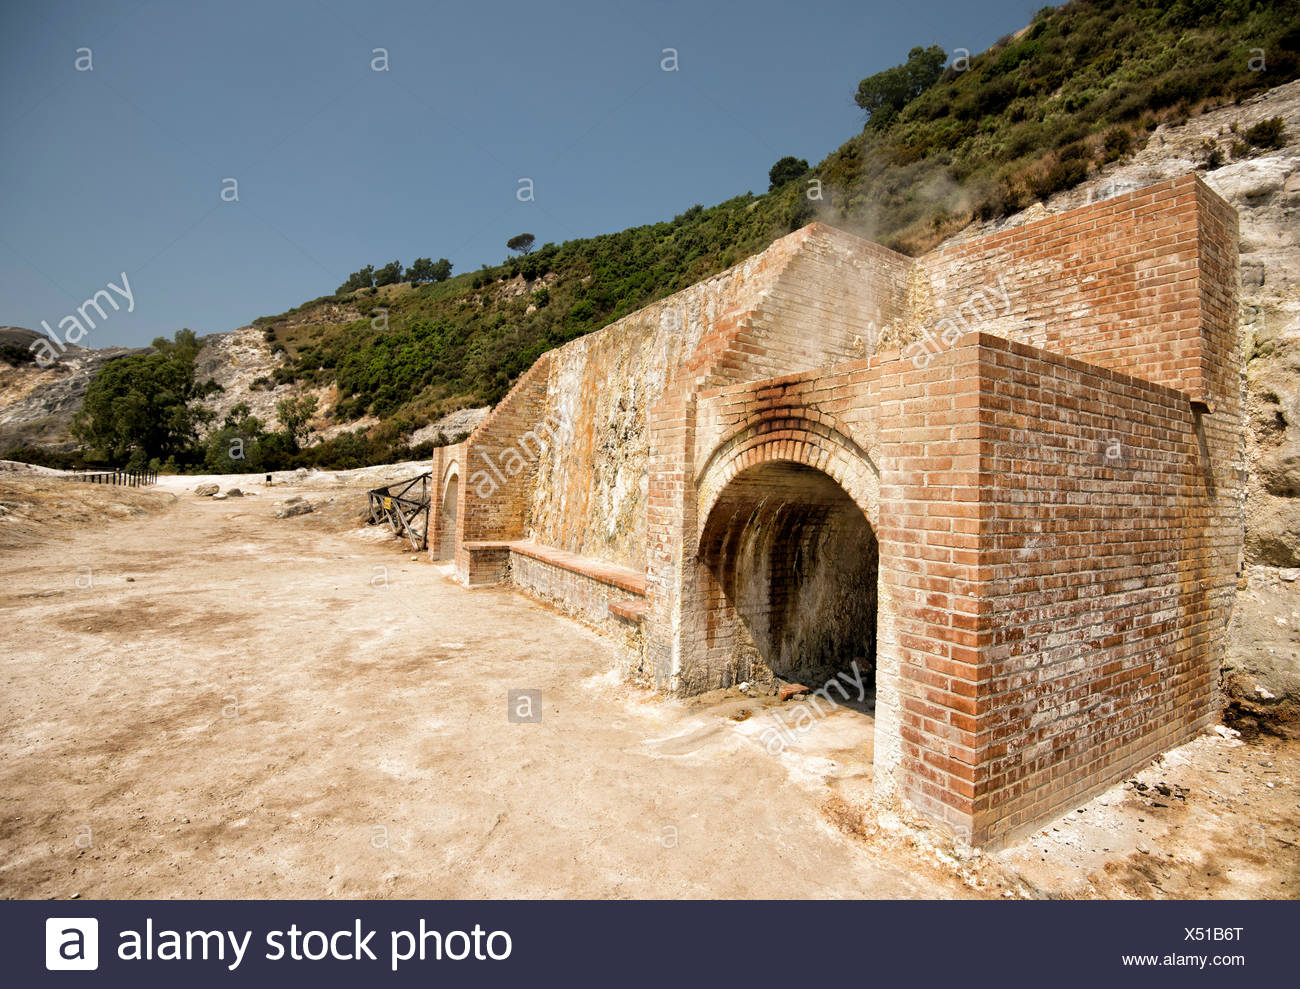 The entrance to the Solfatara crater. - Stock Image